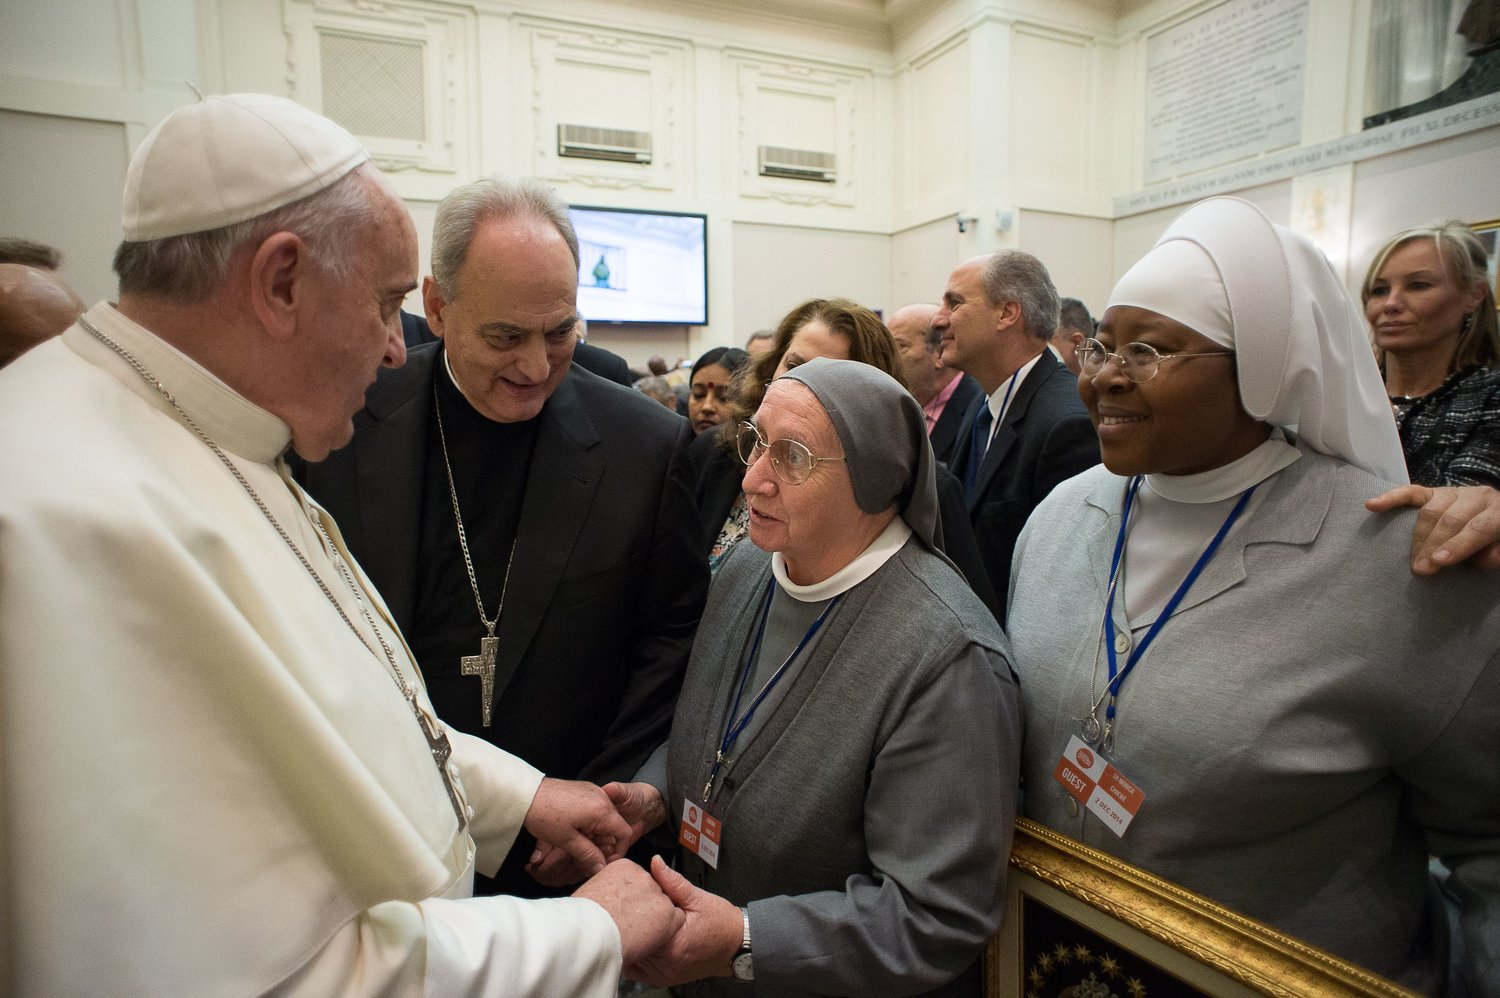 Pope Francis greets Consolata Missionary Sister Eugenia Bonetti in this Dec. 2, 2014, file photo. Pope Francis has asked Sister Bonetti, a long-time activist in the fight against human trafficking, to write the meditations for his celebration of the Good Friday Way of the Cross prayer service at Rome's Colosseum April 19, 2019.